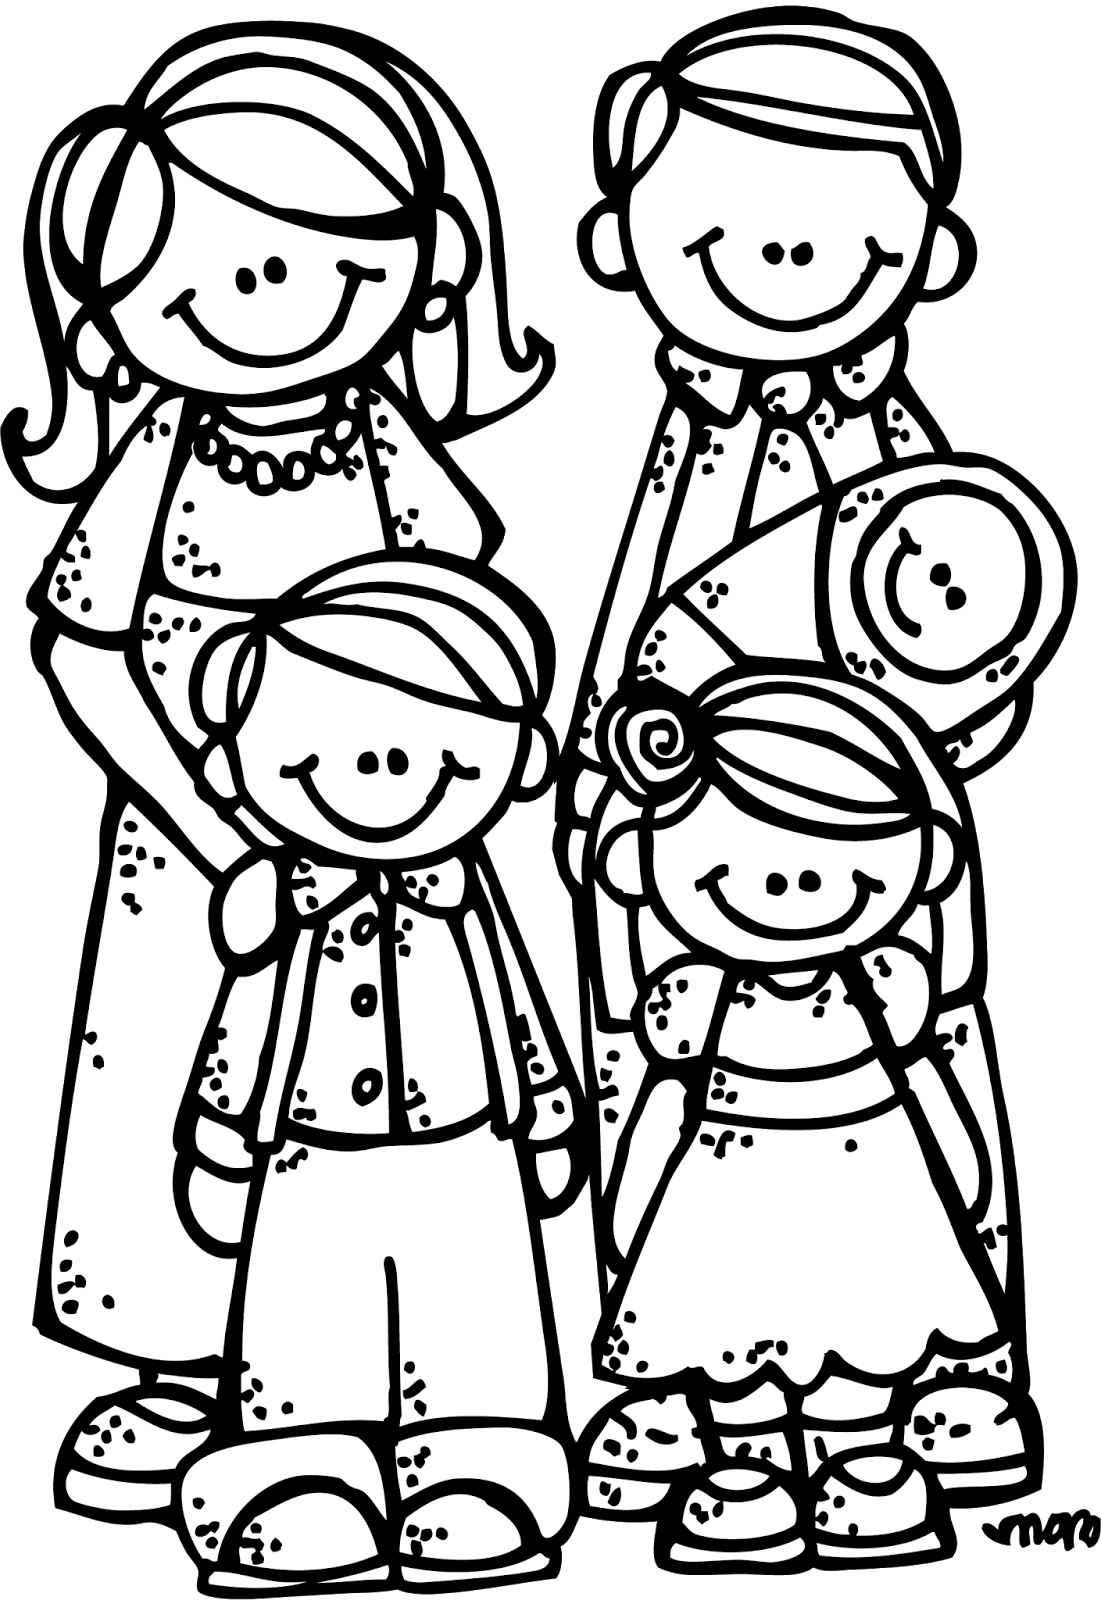 family coloring page - melonheadz lds illustrating new eternal family graphics